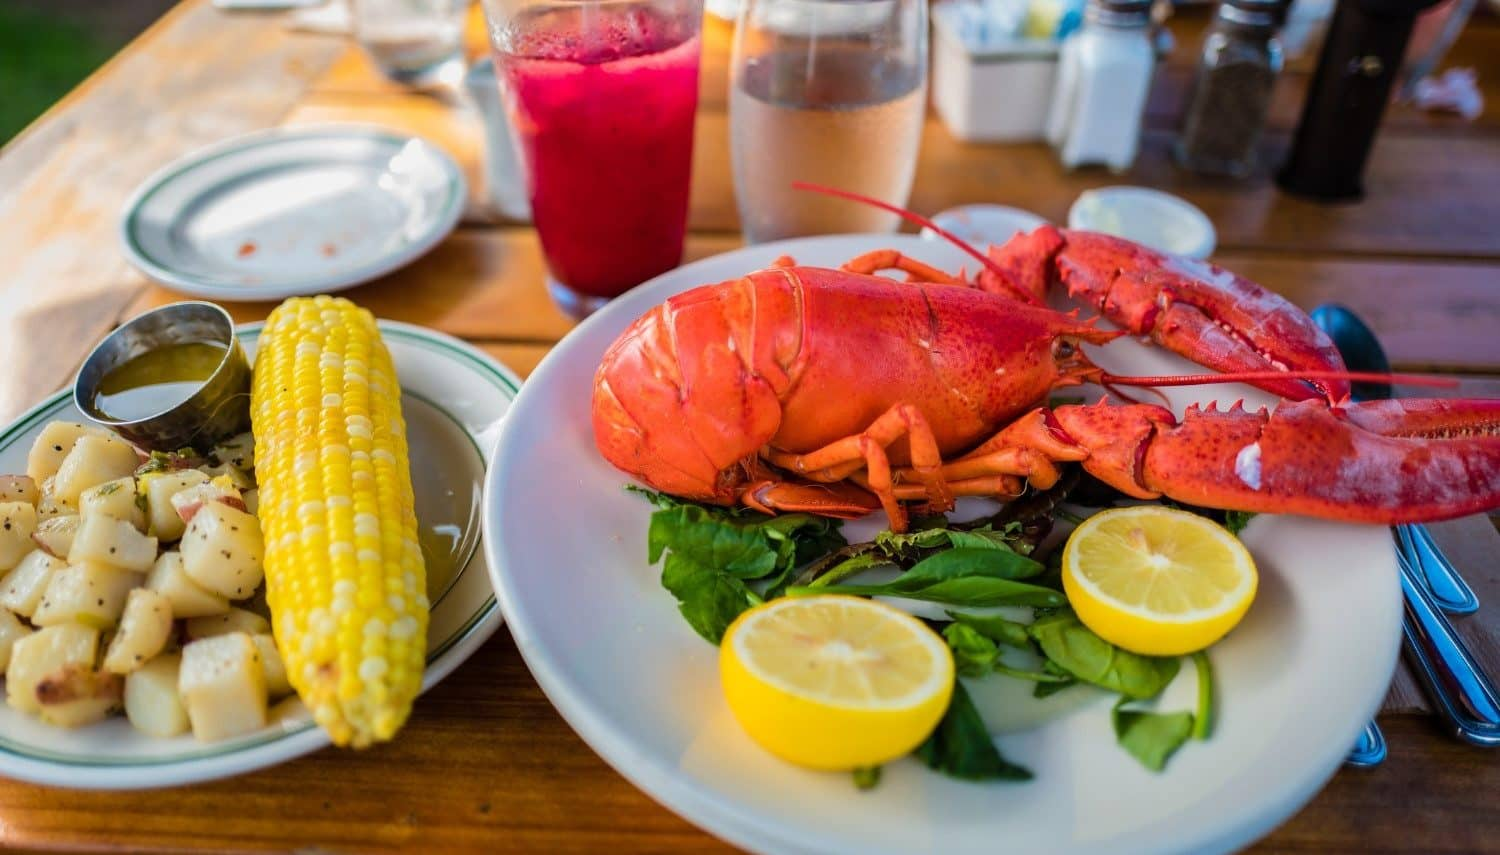 bright red lobster on a plate with greens and lemon beside an ear of yellow corn on the cob